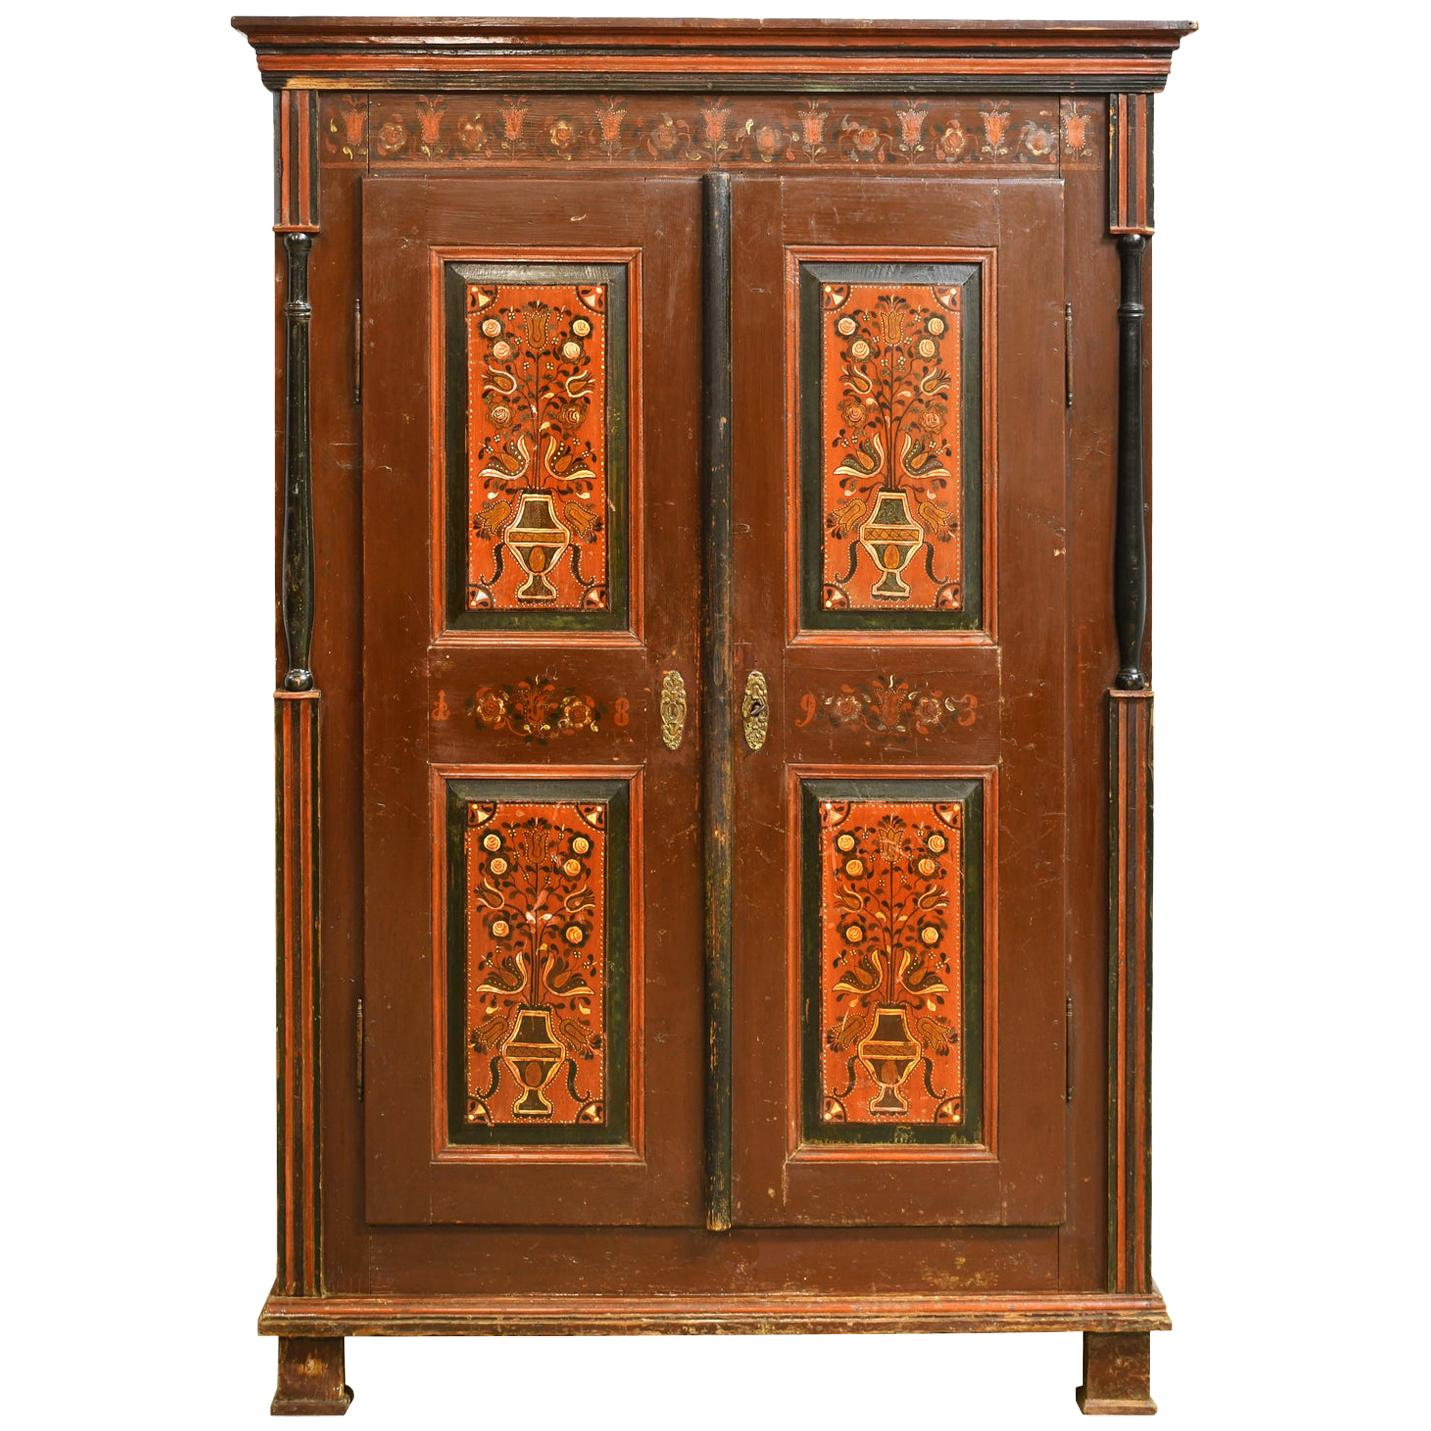 Antique 19th Century Dowry or Wedding Armoire w/ Maroon Paint & Floral Bouquets